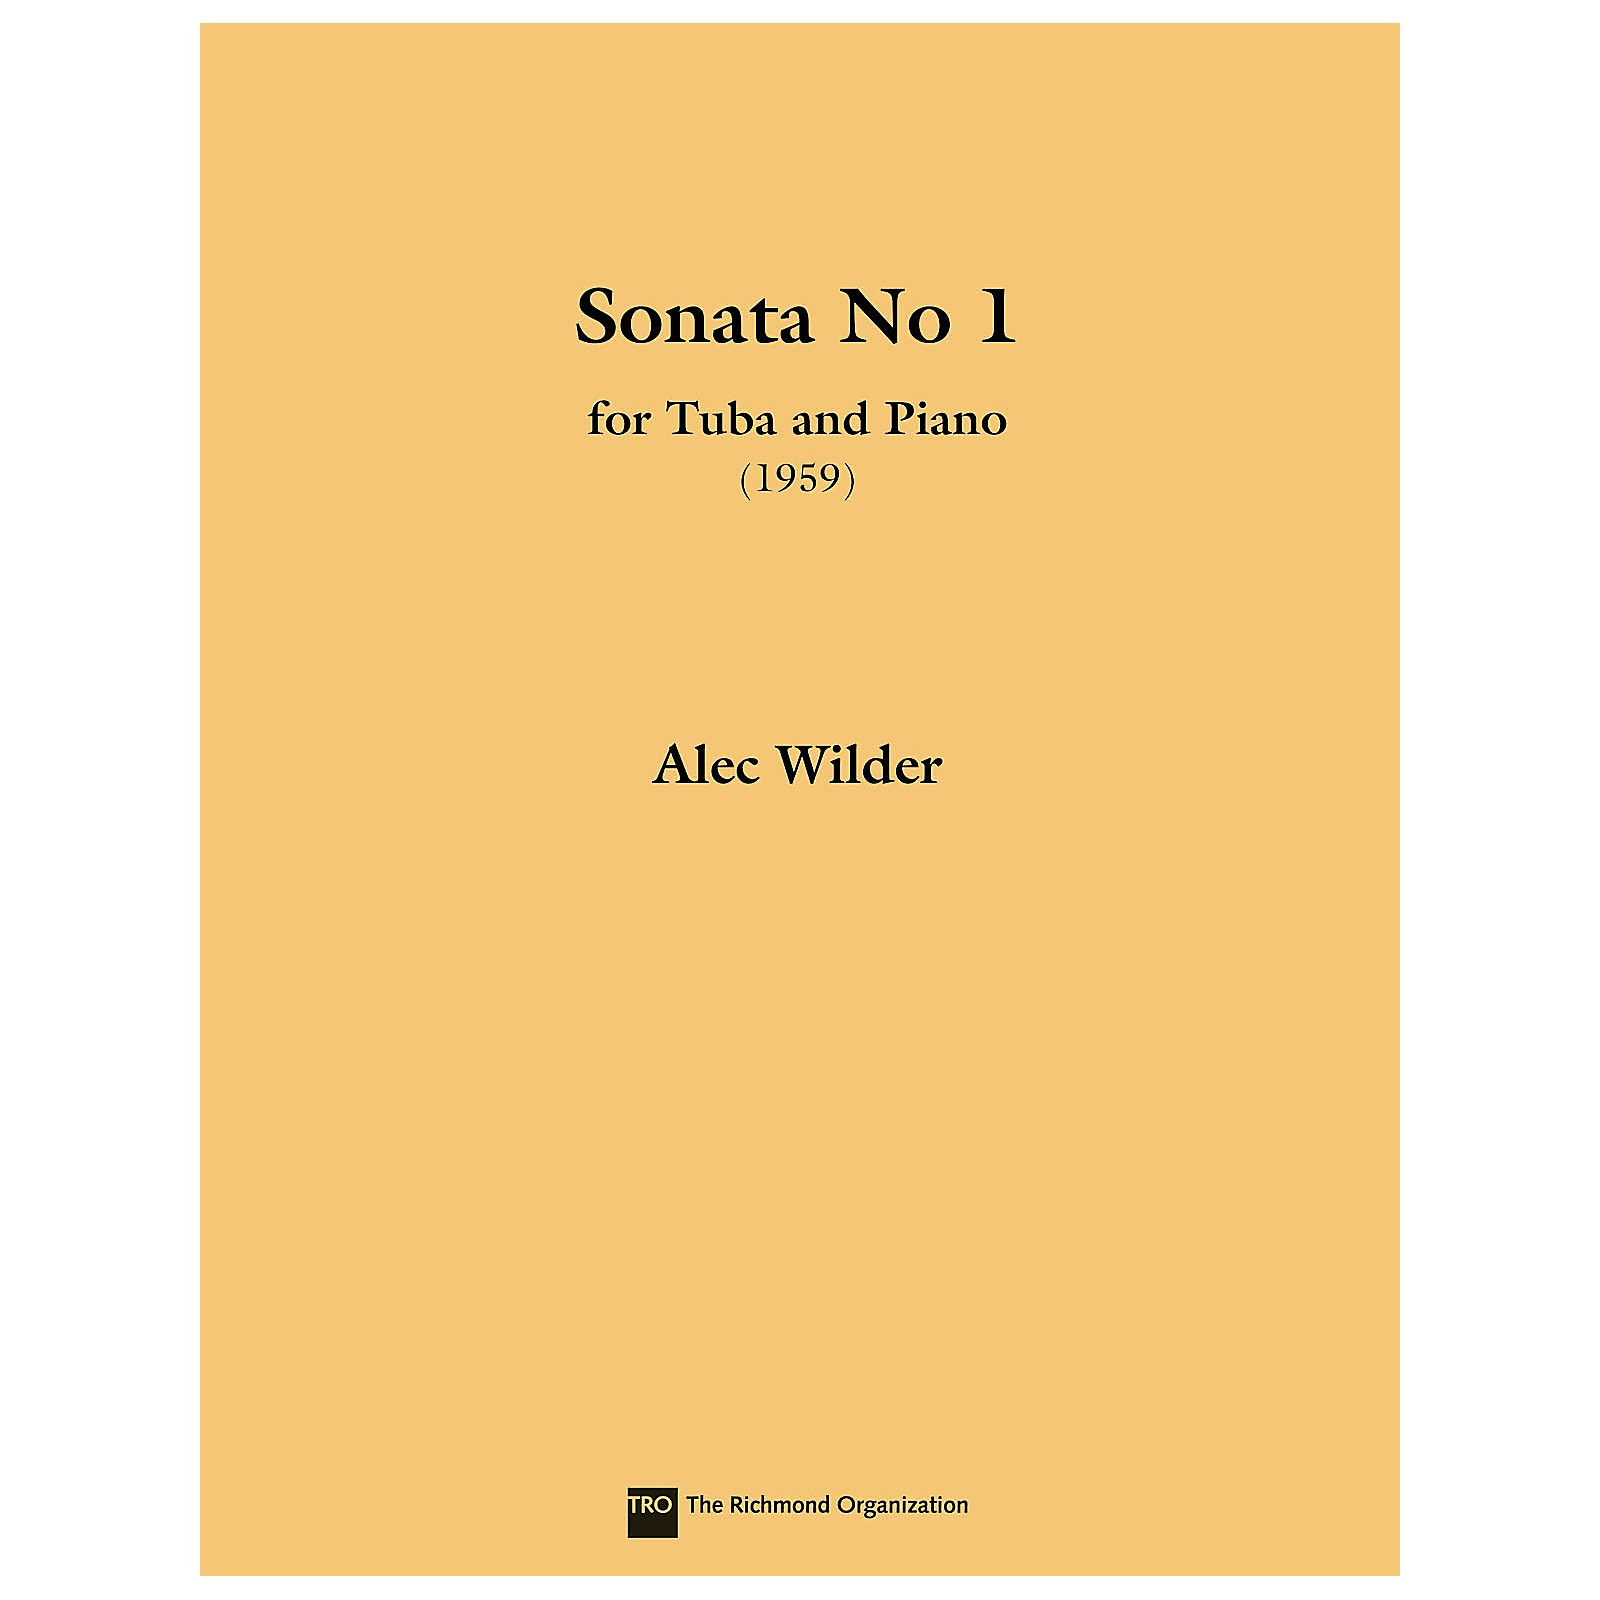 TRO ESSEX Music Group Sonata for Tuba and Piano (1959) (Tuba (B.C.)) Richmond Music ¯ Instrumental Series by Alec Wilder